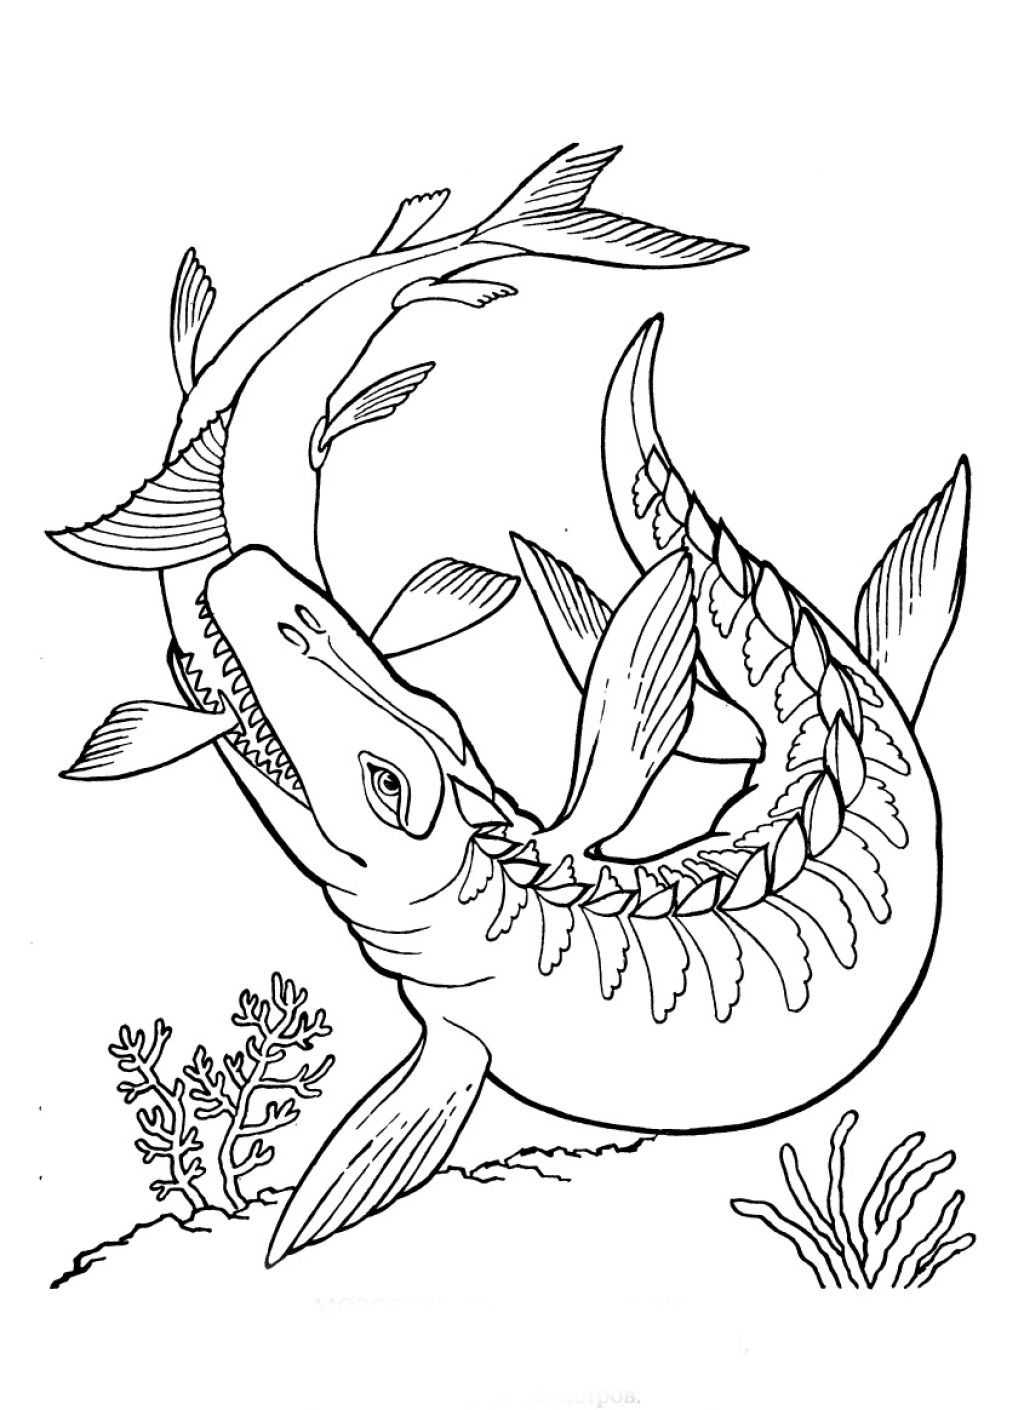 free printable dinosaur coloring pages coloring dinosaur coloring pages pages printable free dinosaur coloring